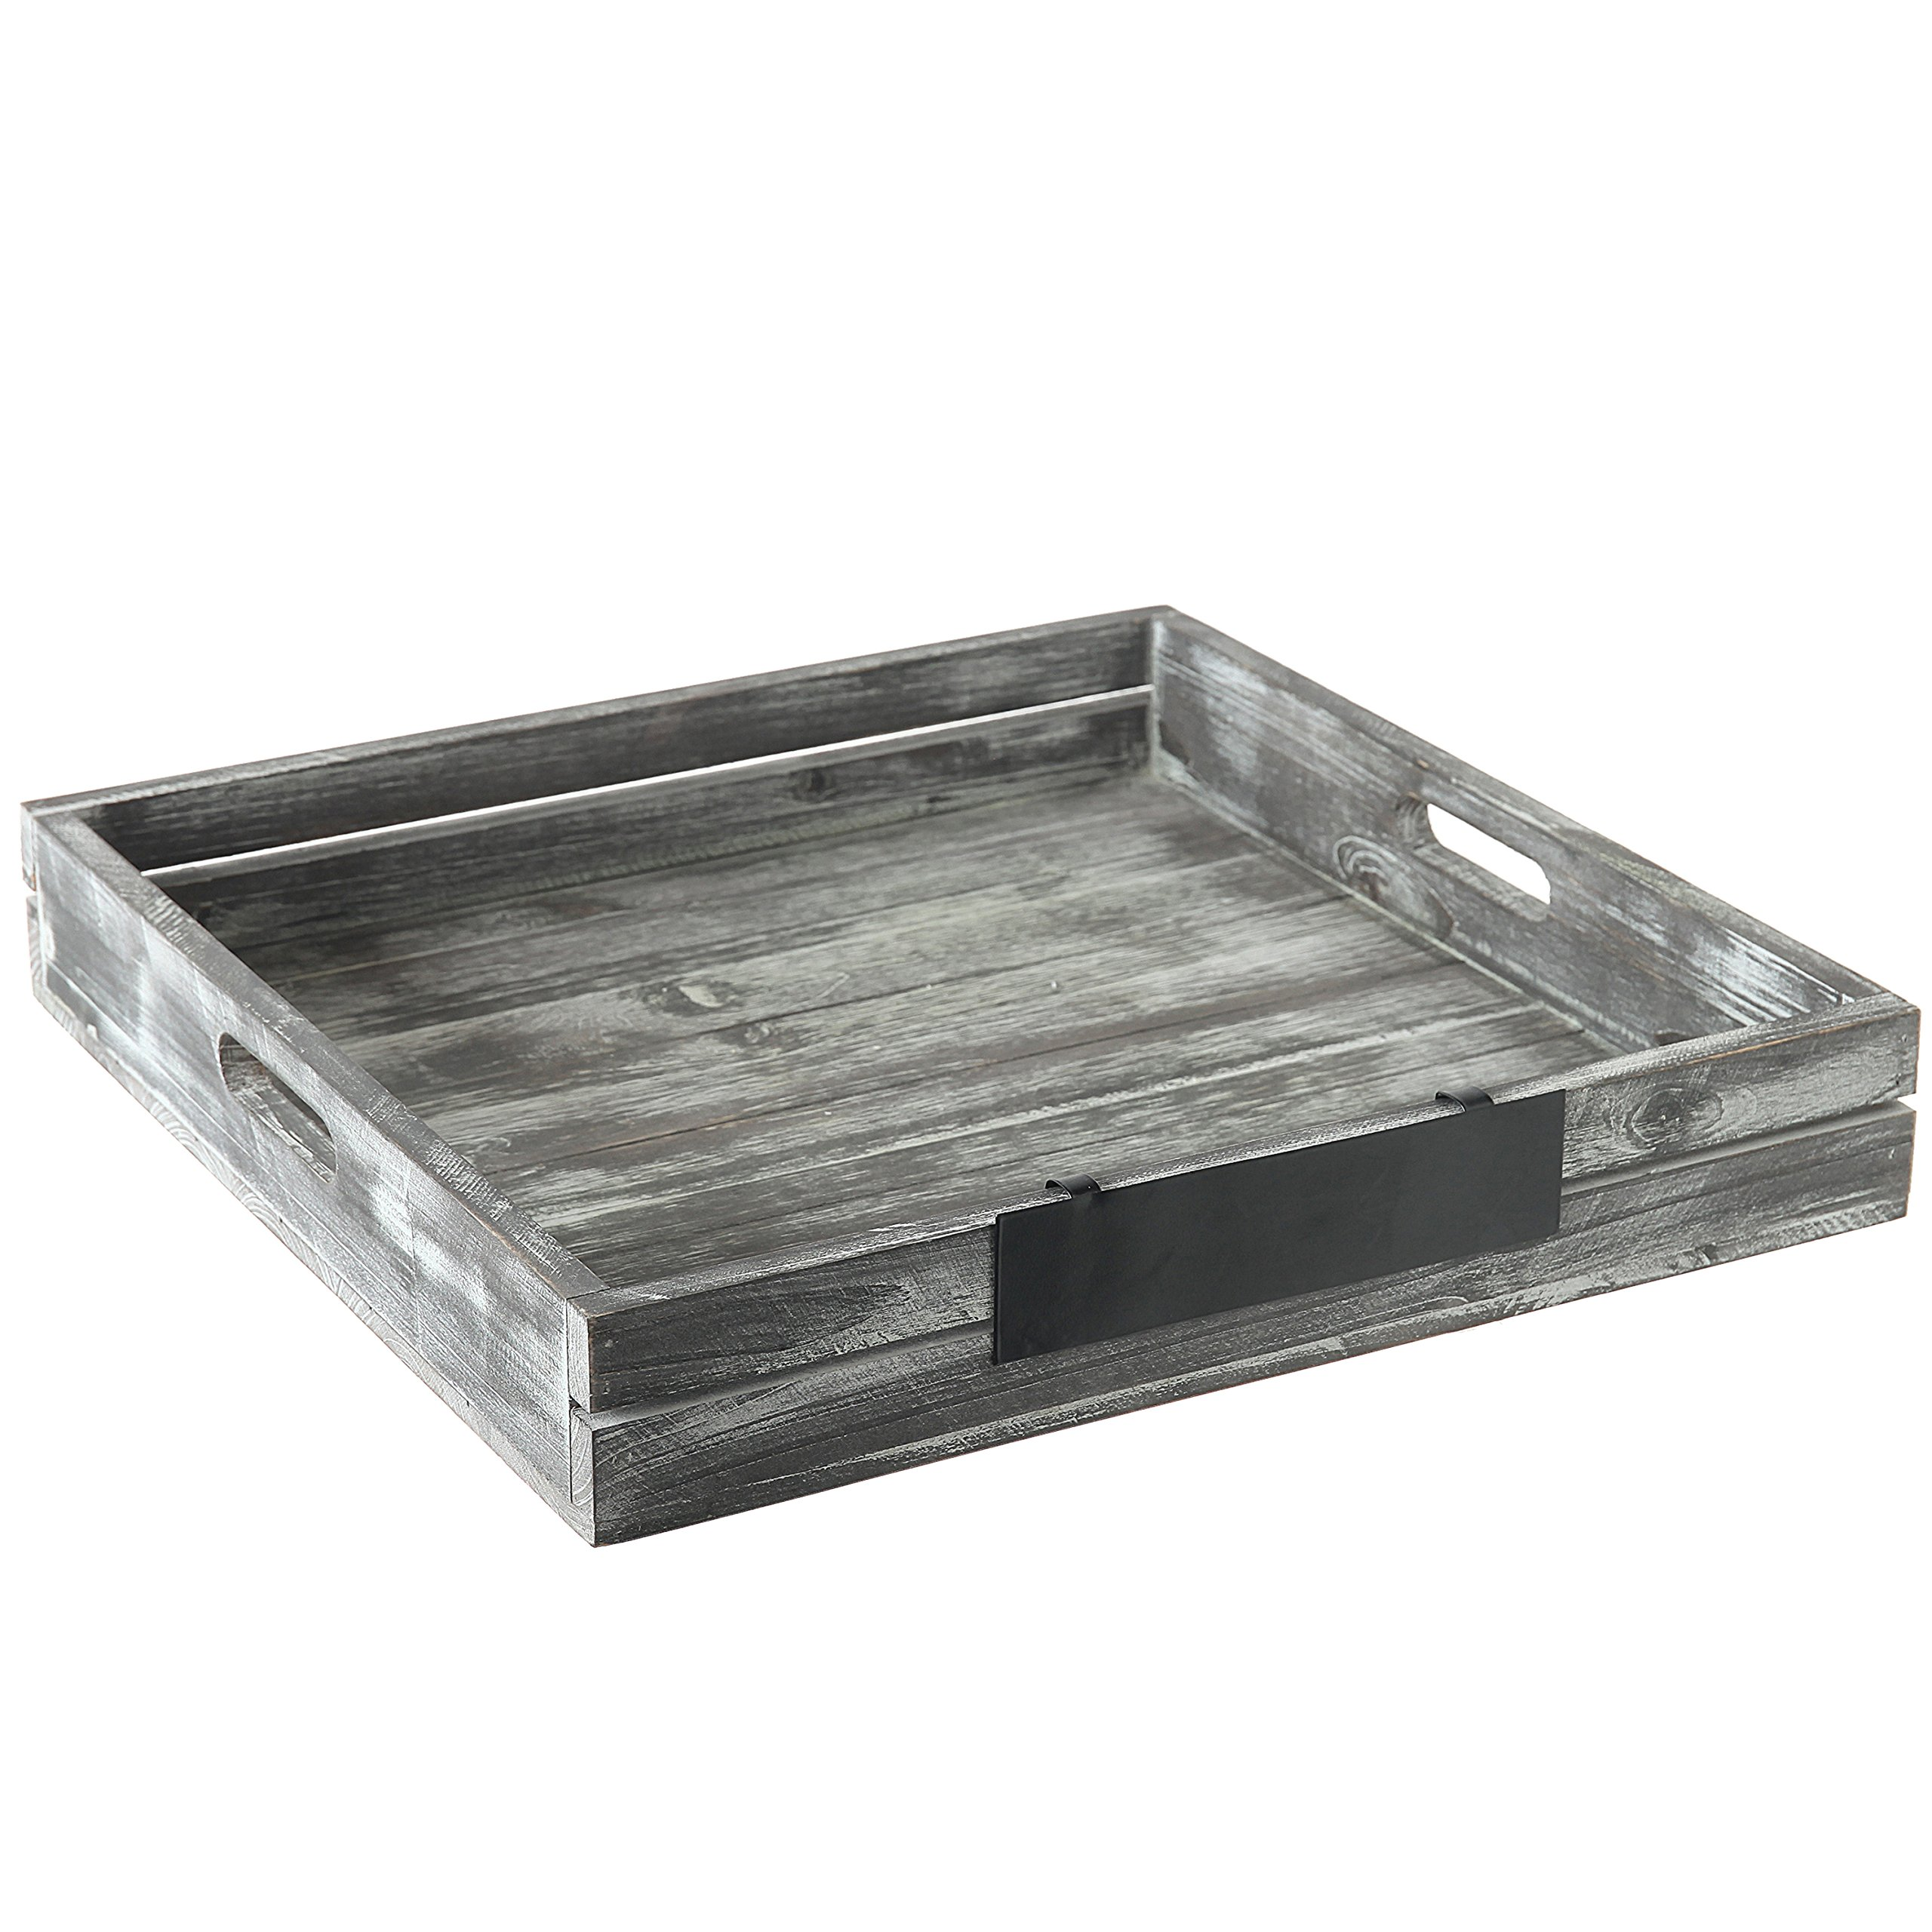 MyGift Whitewashed Gray Wood Crate Style Serving Tray with Handles & Removable Metal Chalkboard Label